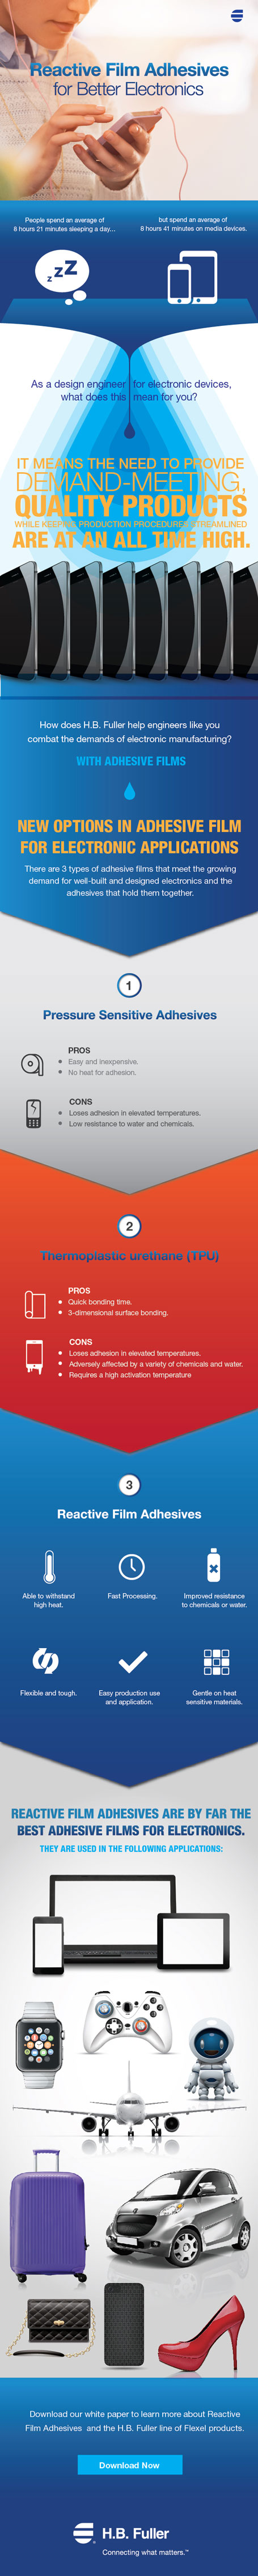 Reactive Film Adhesives Infographic